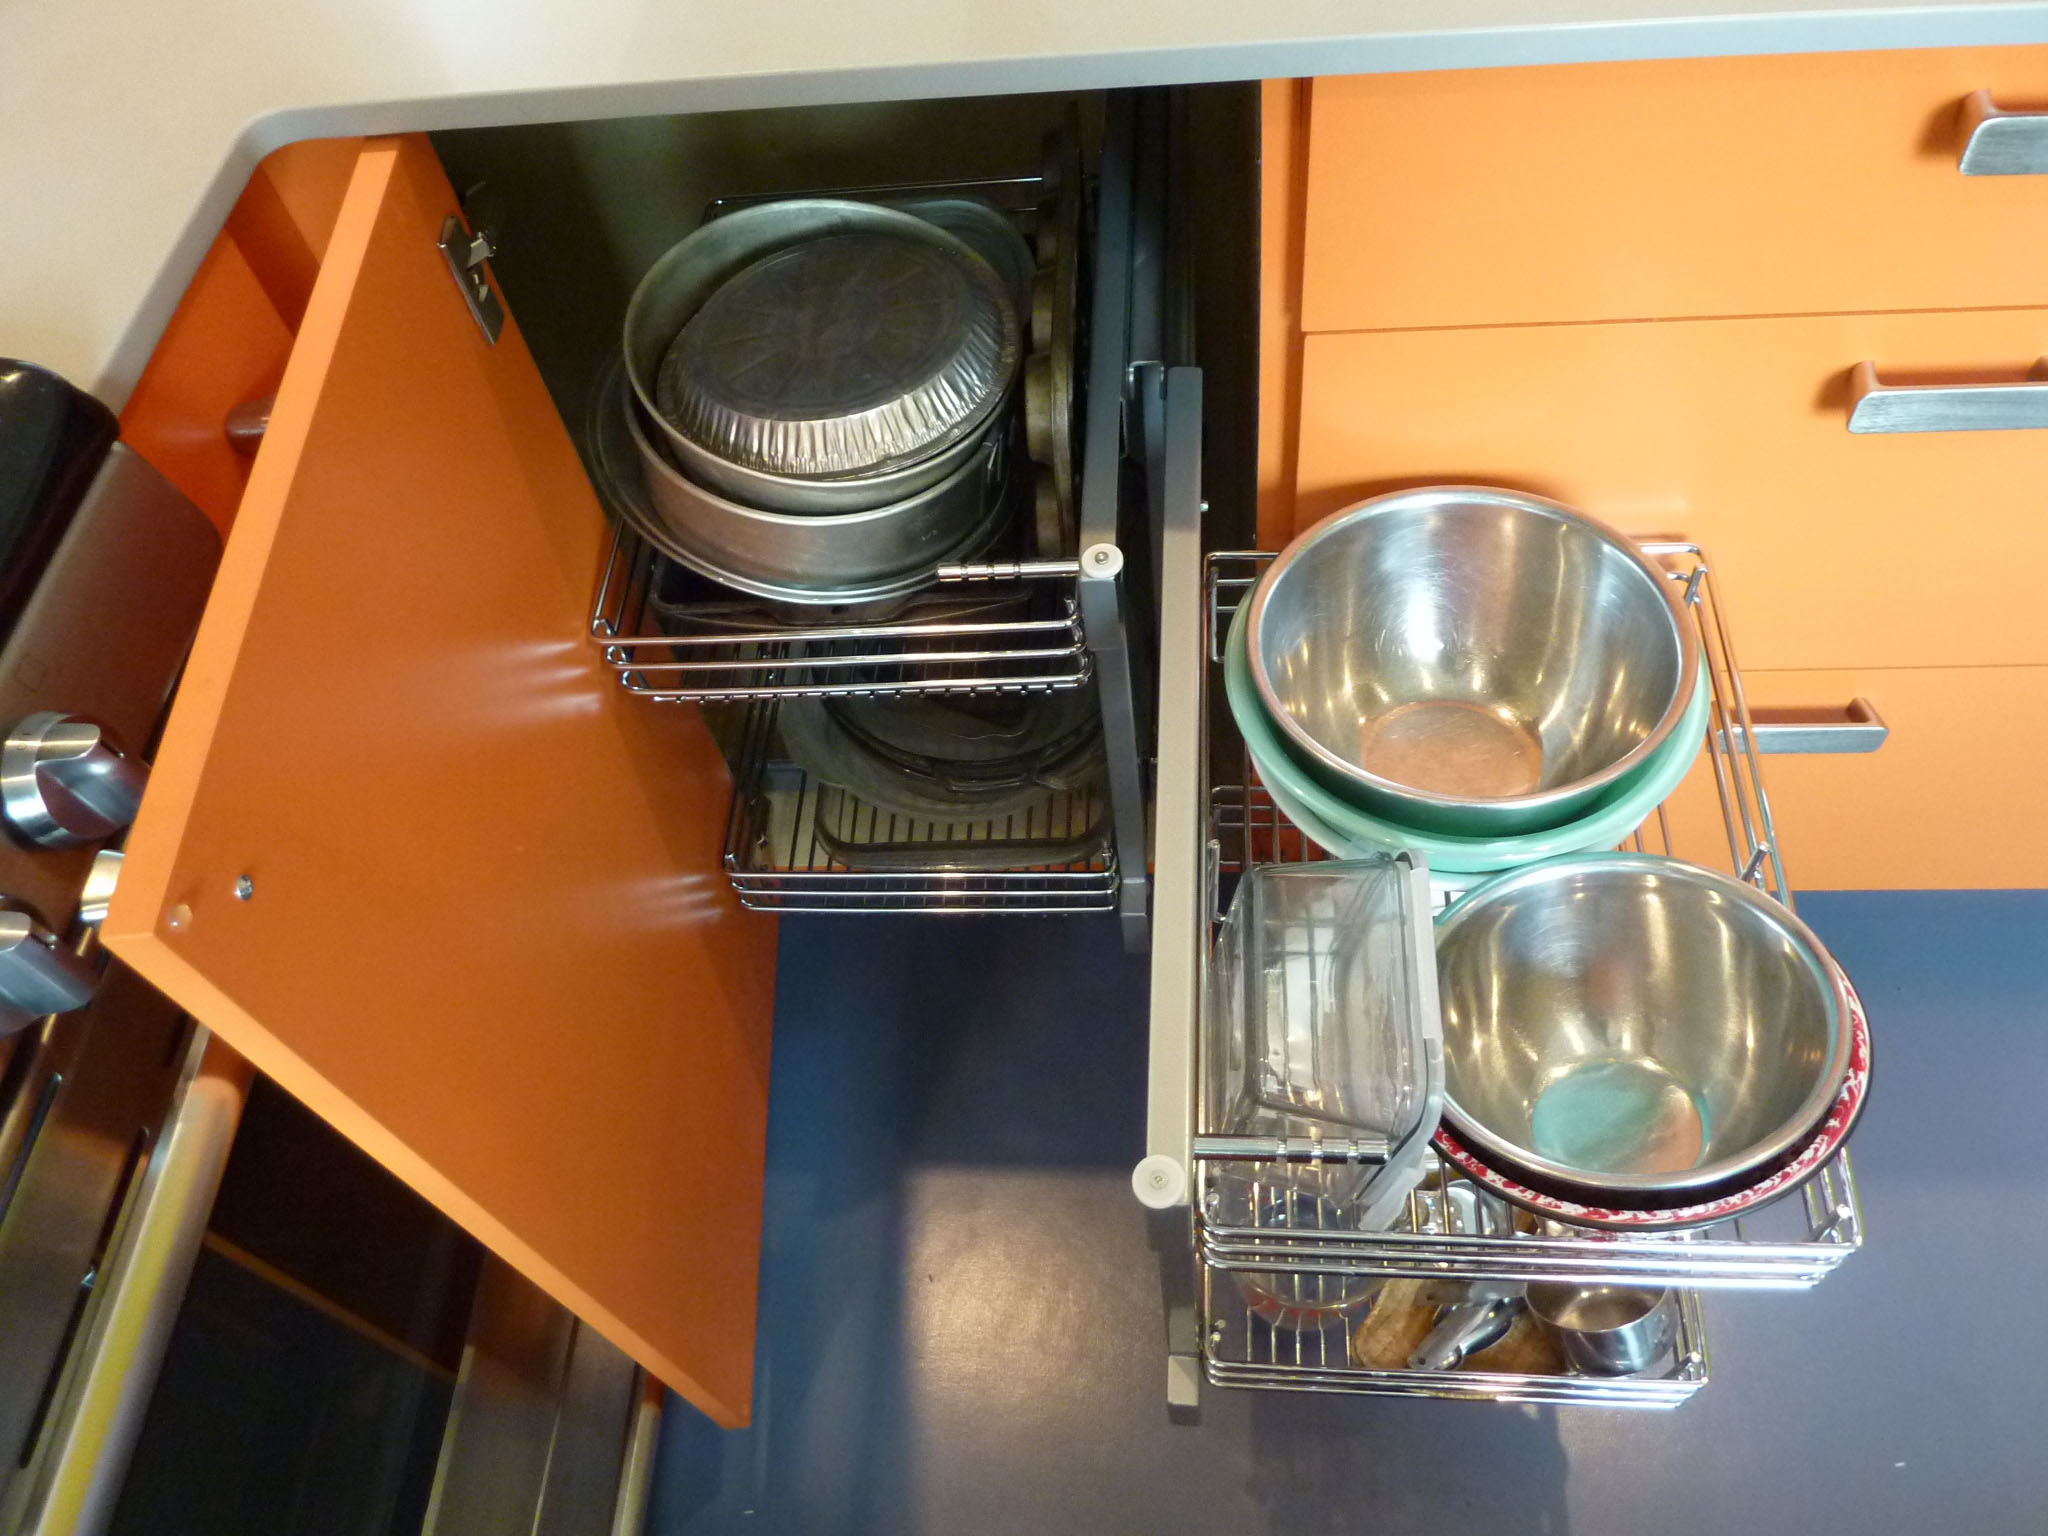 Pullouts maximize space